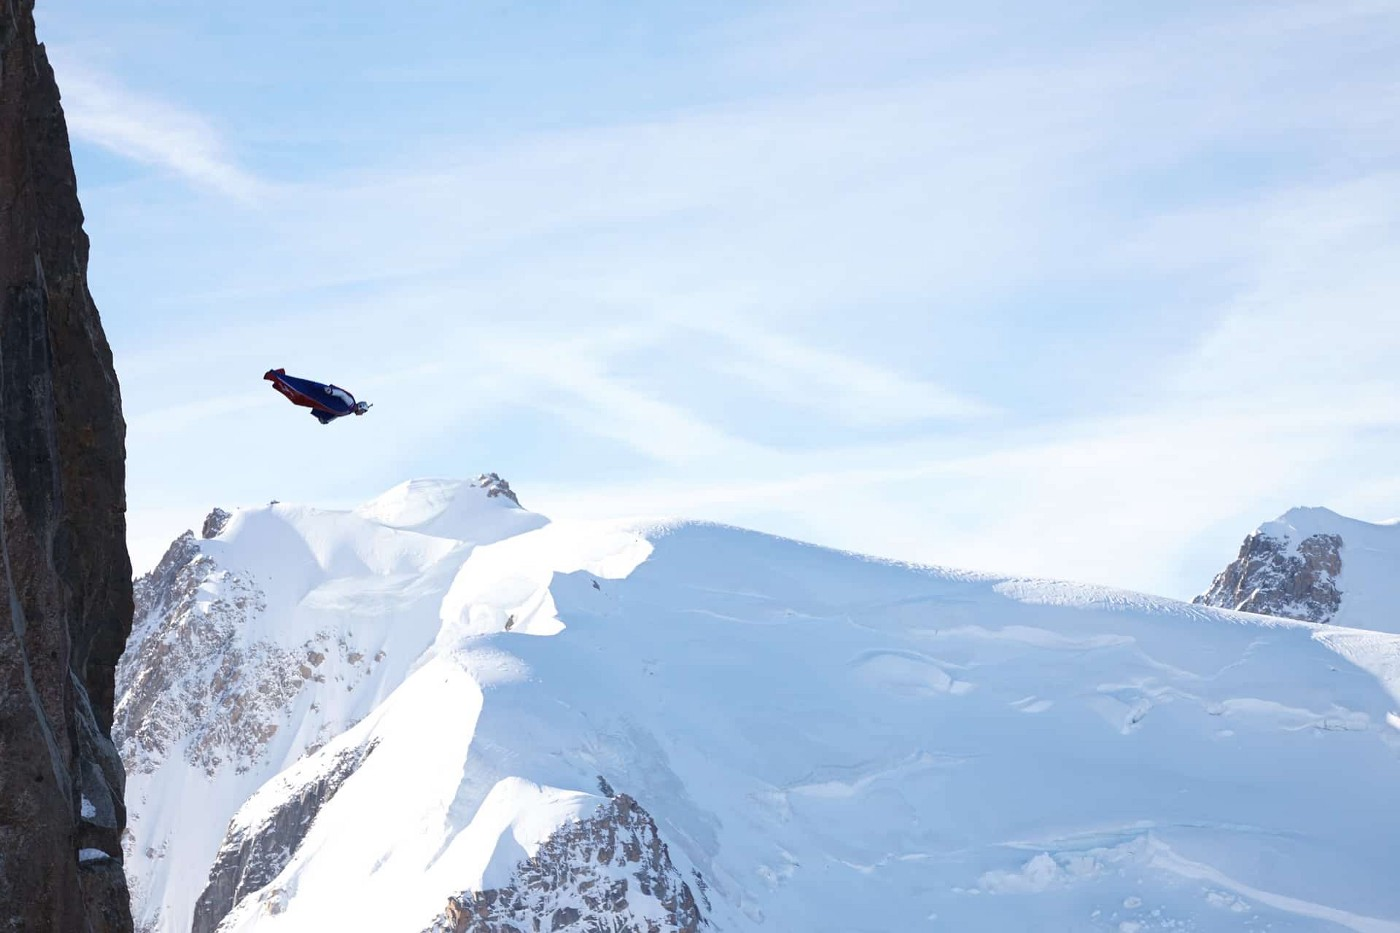 A professional wingsuit pilot just after base-jumping